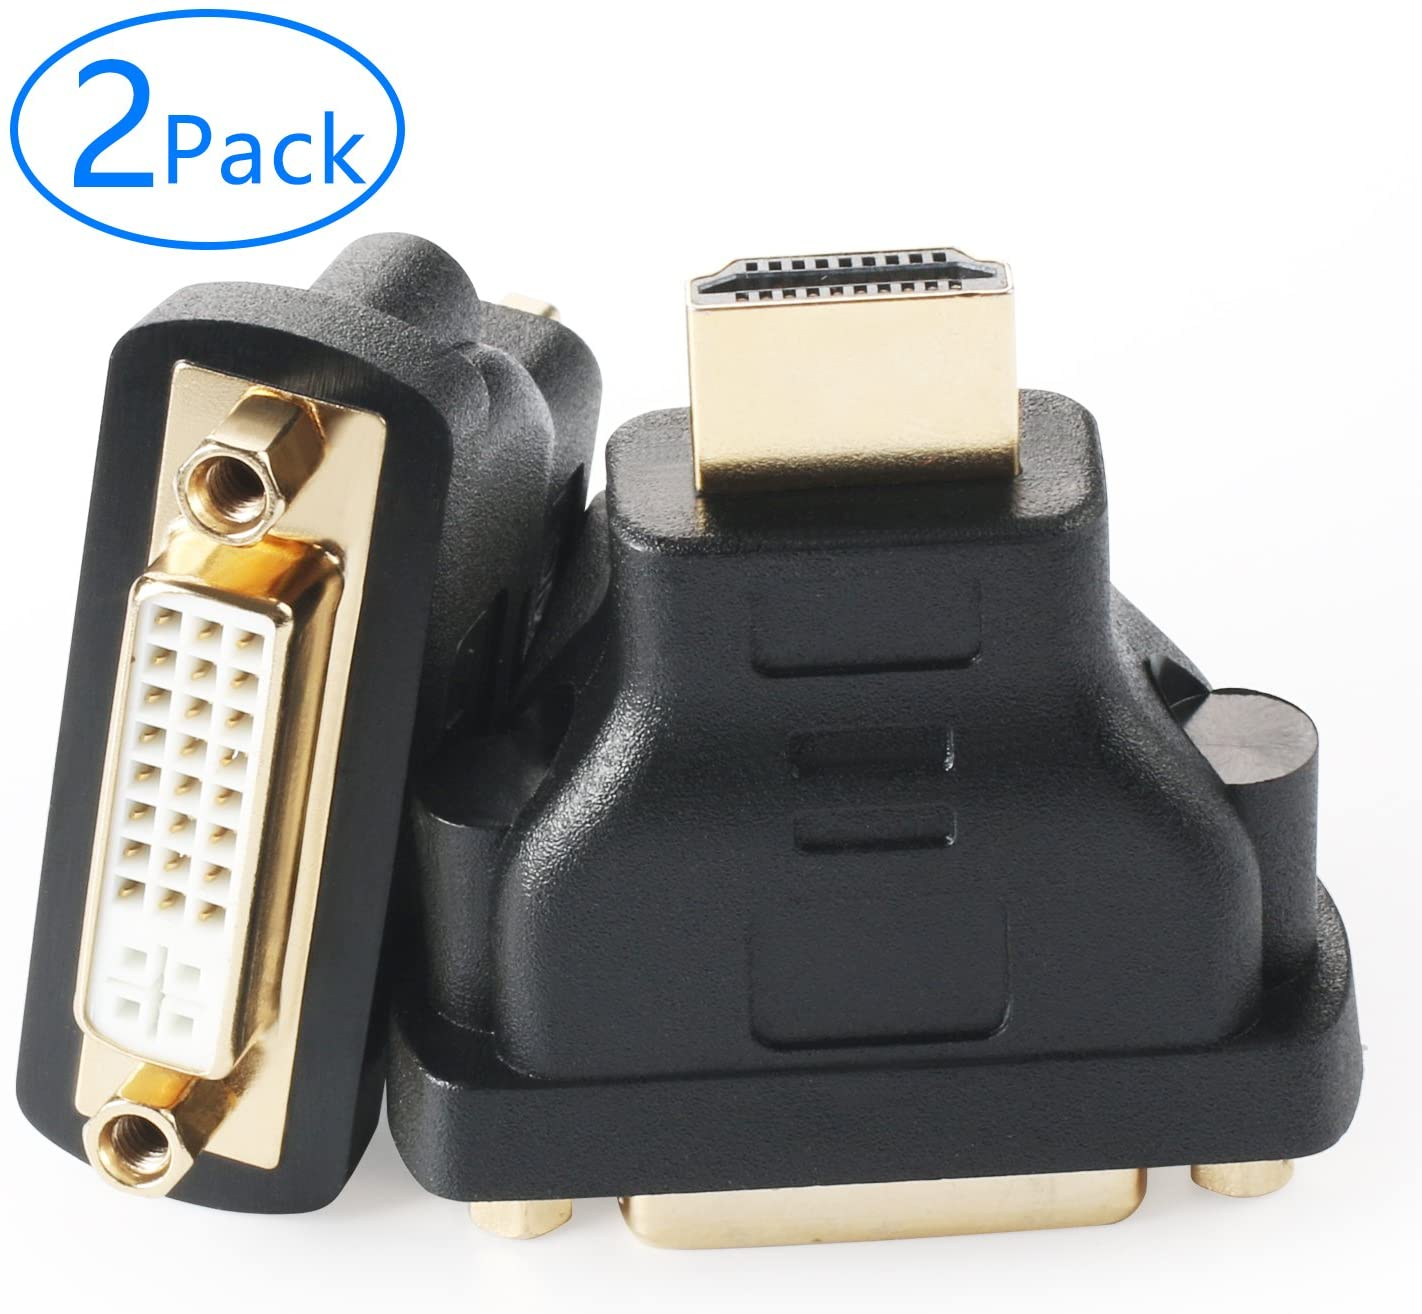 Tainston HDMI to DVI-D Adapter(2 Pack) HDMI Male to DVI24+1 Female Adapters Gold Plated